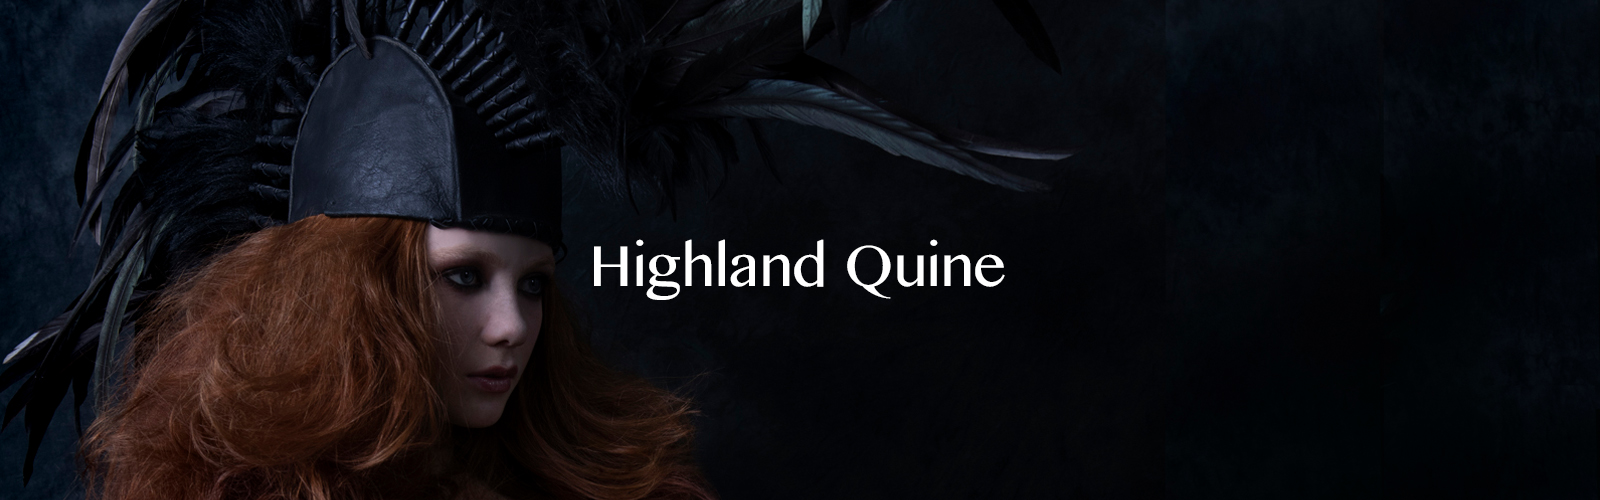 Highland-Quine-header-with-text